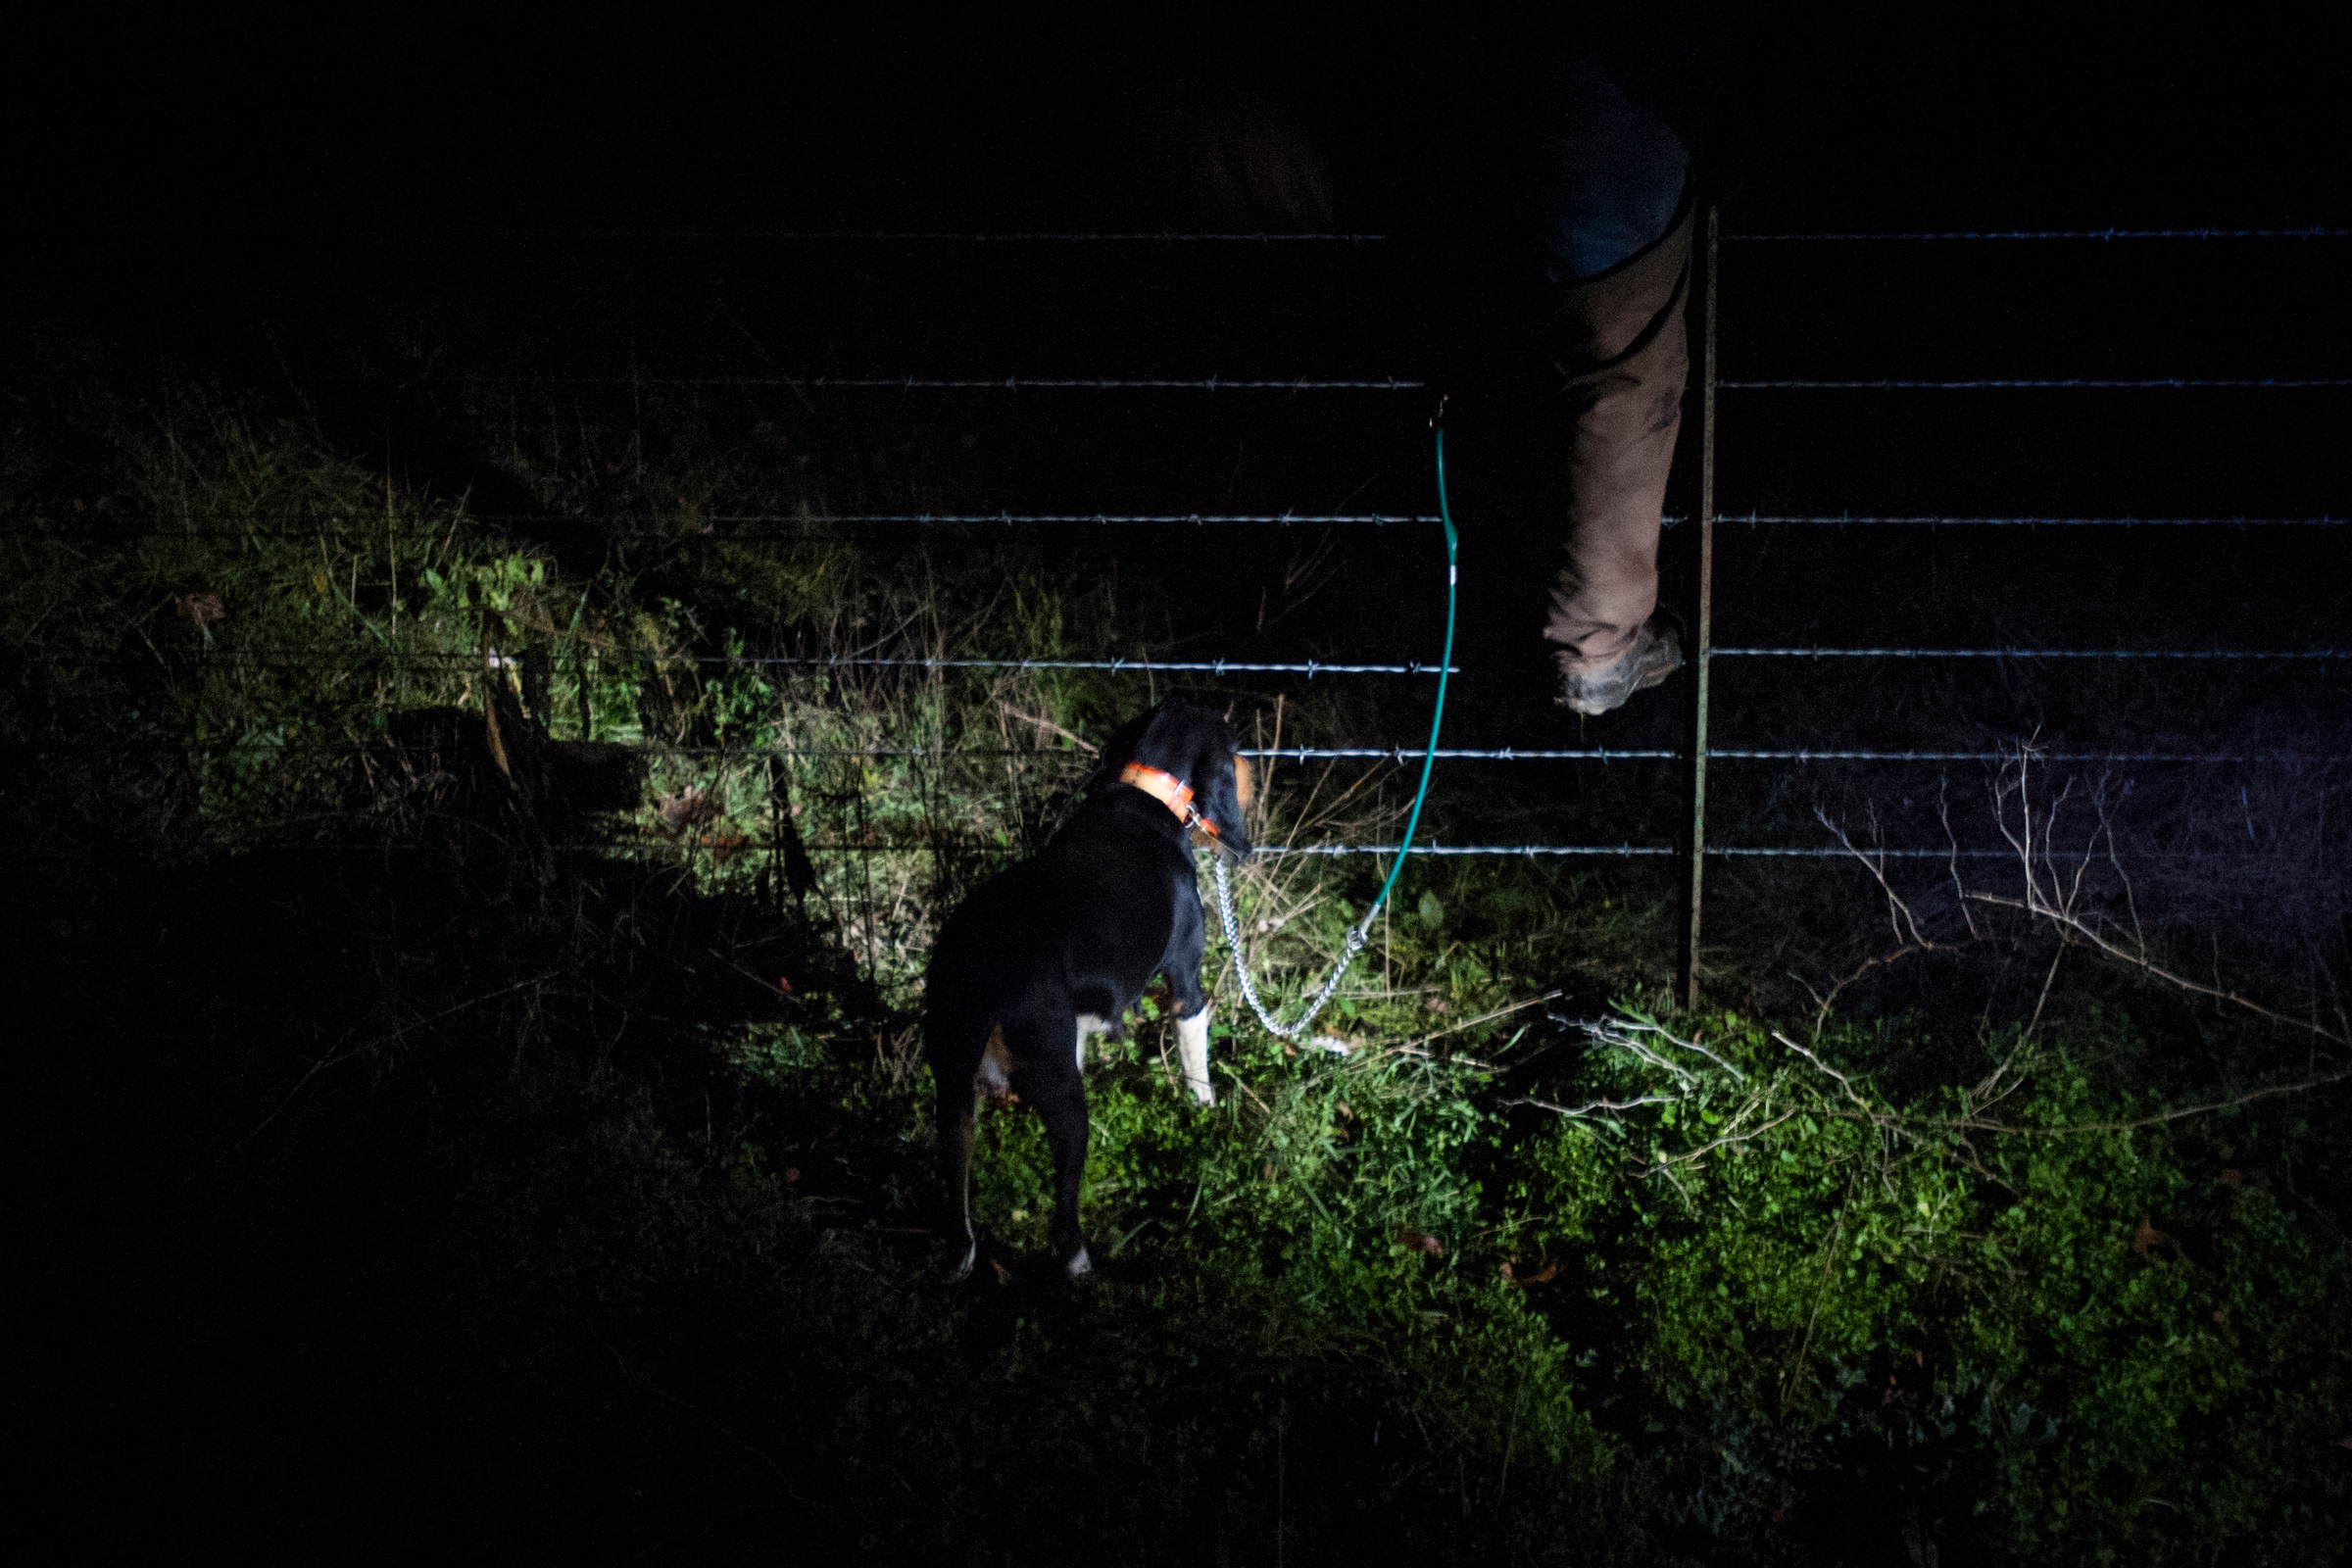 Man-made road blocks like barbed wire often impede hunters but pose little resistance for dogs who will track a scent for miles through fields, forests, and over rivers.